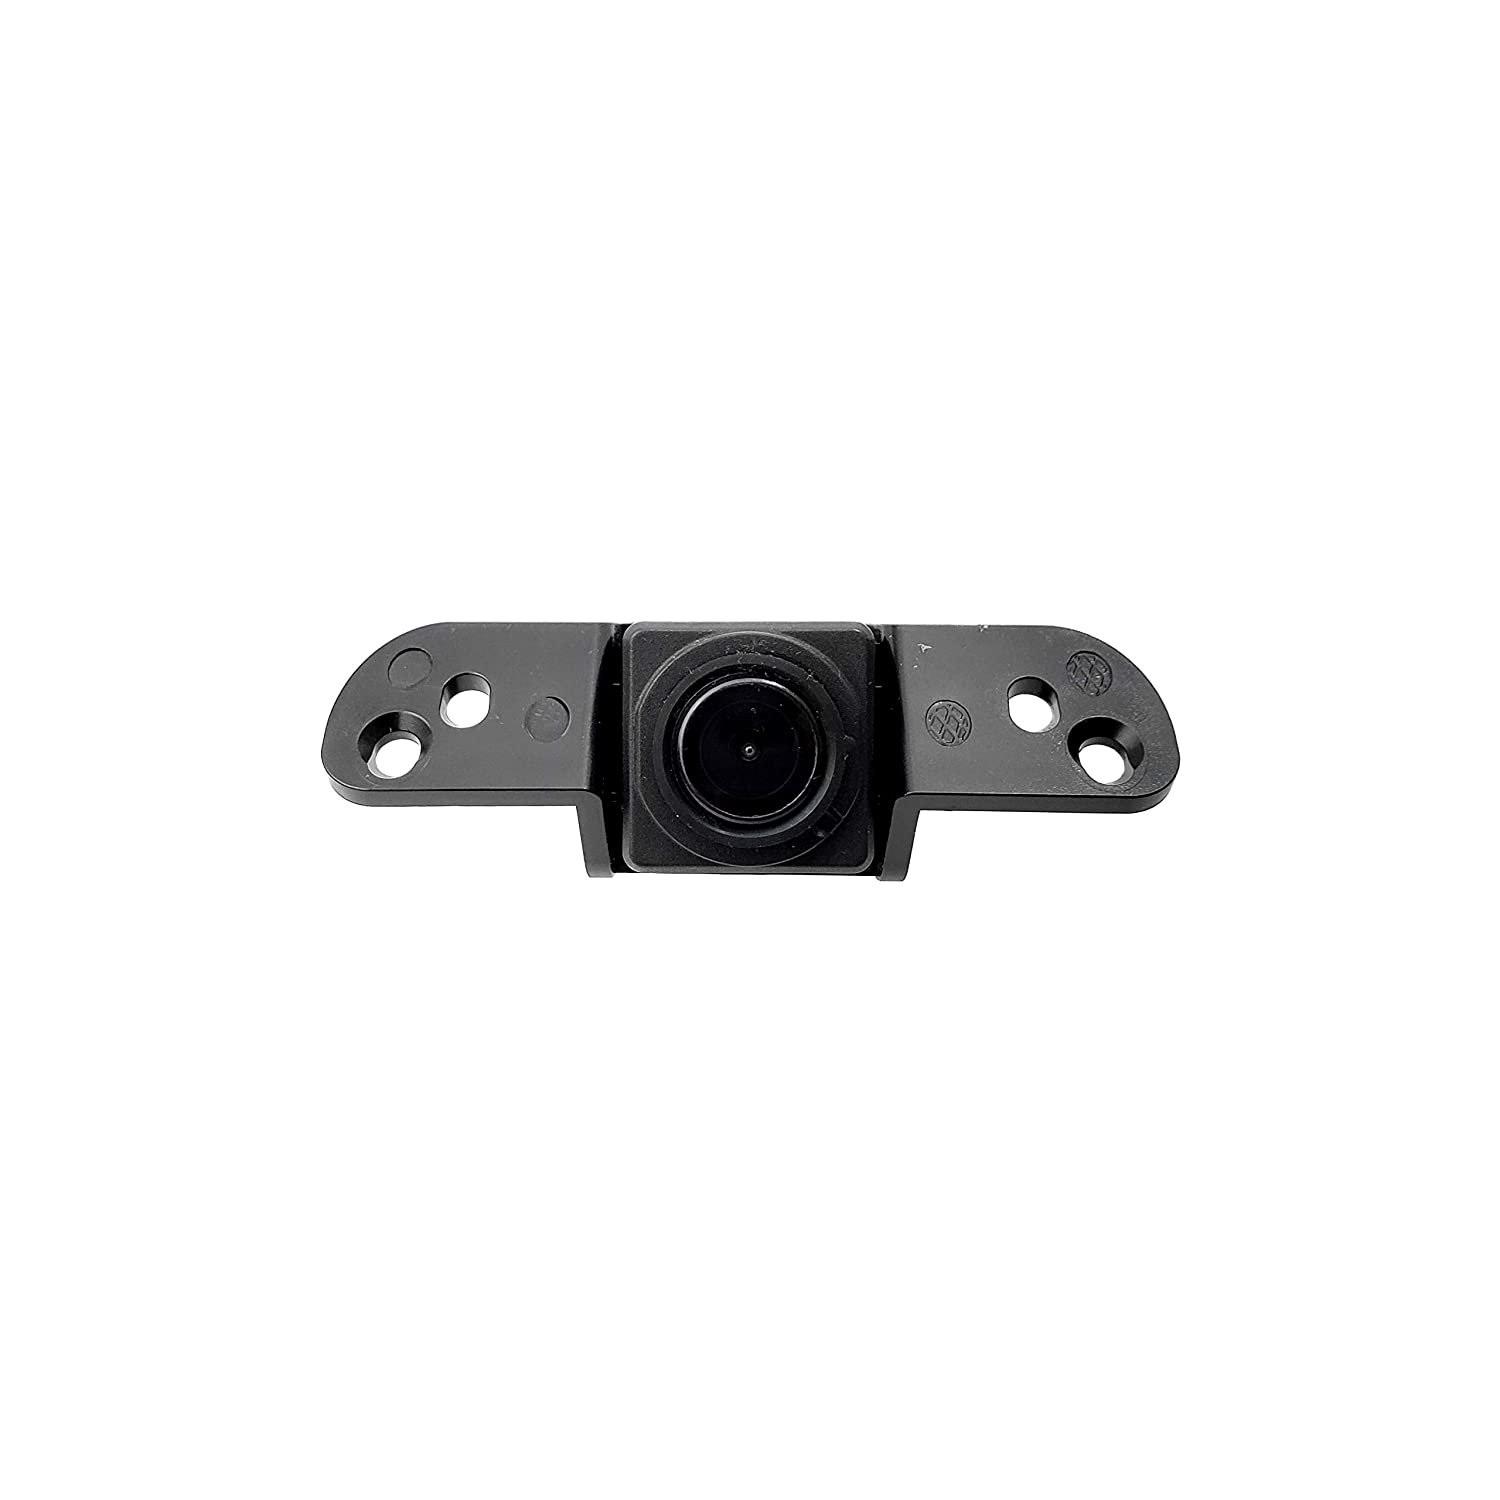 3500 2016-2019 Backup Camera OE Part # 84062896 23363727 2016-2019 2500 Master Tailgaters Replacement for Chevrolet Silverado//GMC Sierra 1500